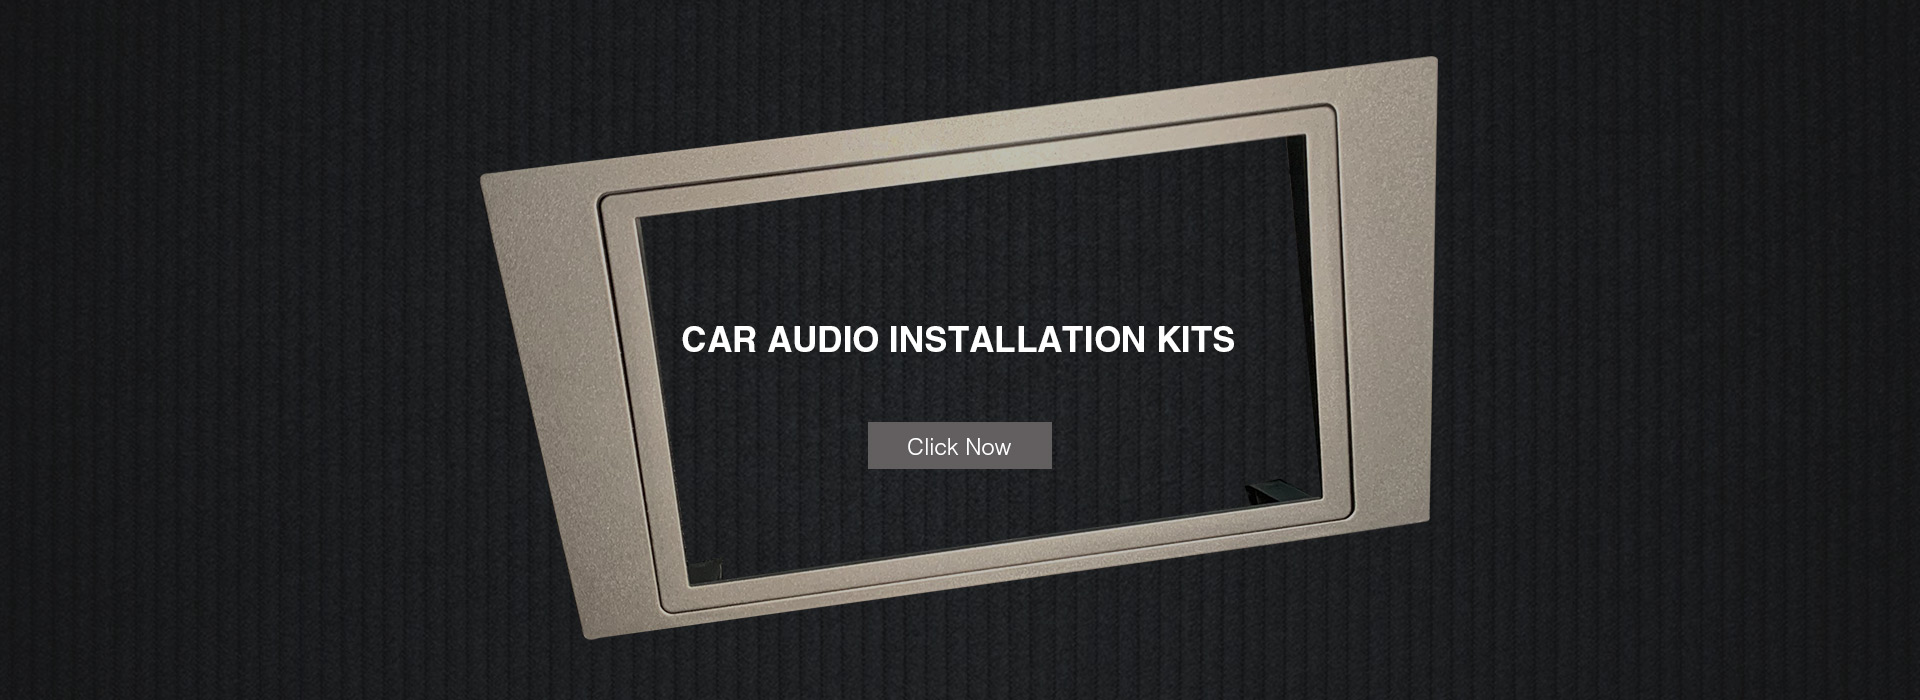 Car Audio Installation Kits